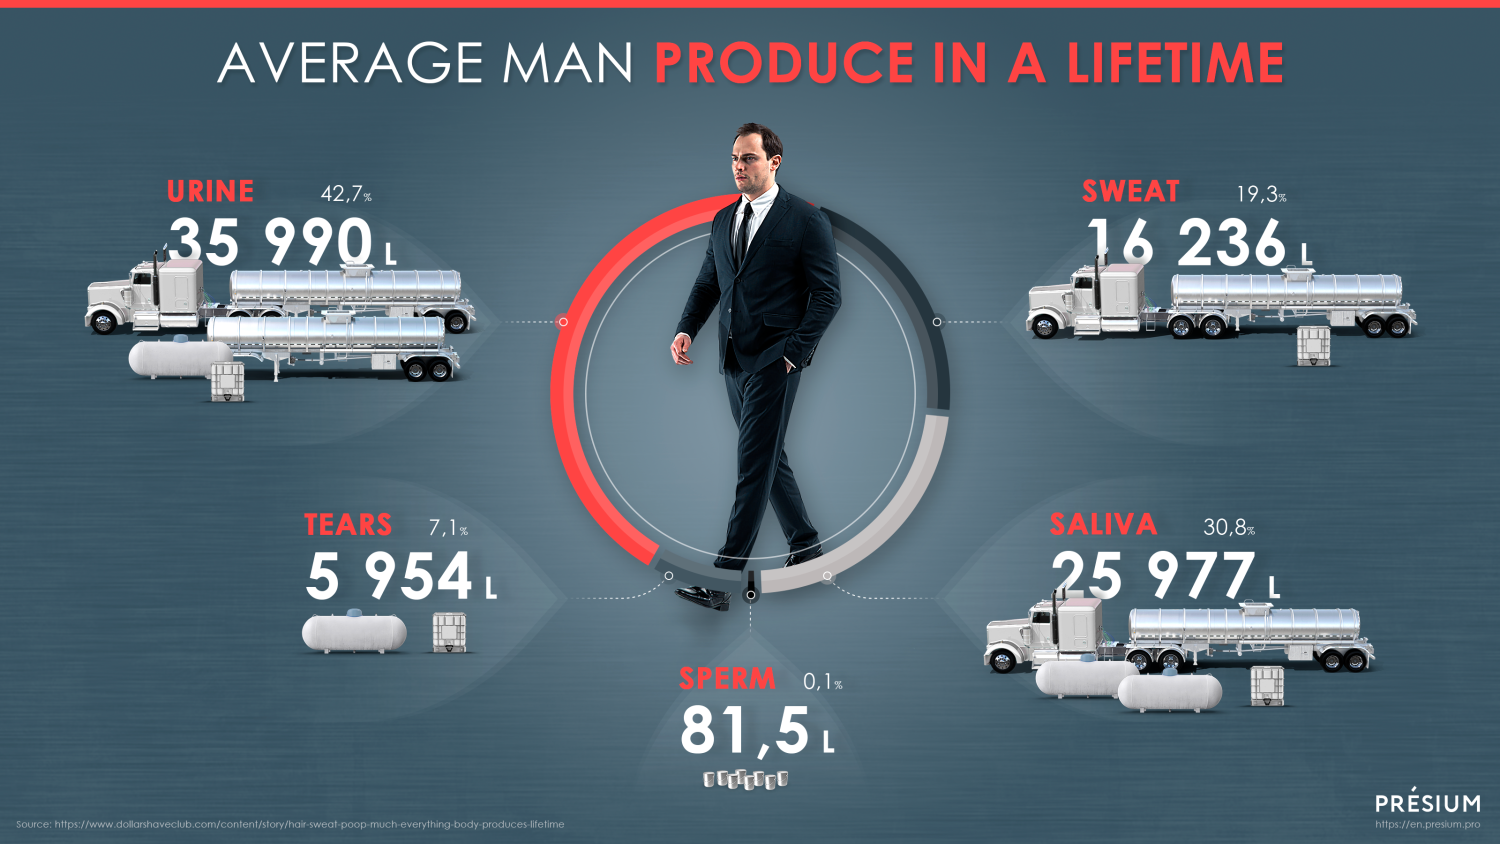 Amount of Liquid the Average Man Produces in a Lifetime